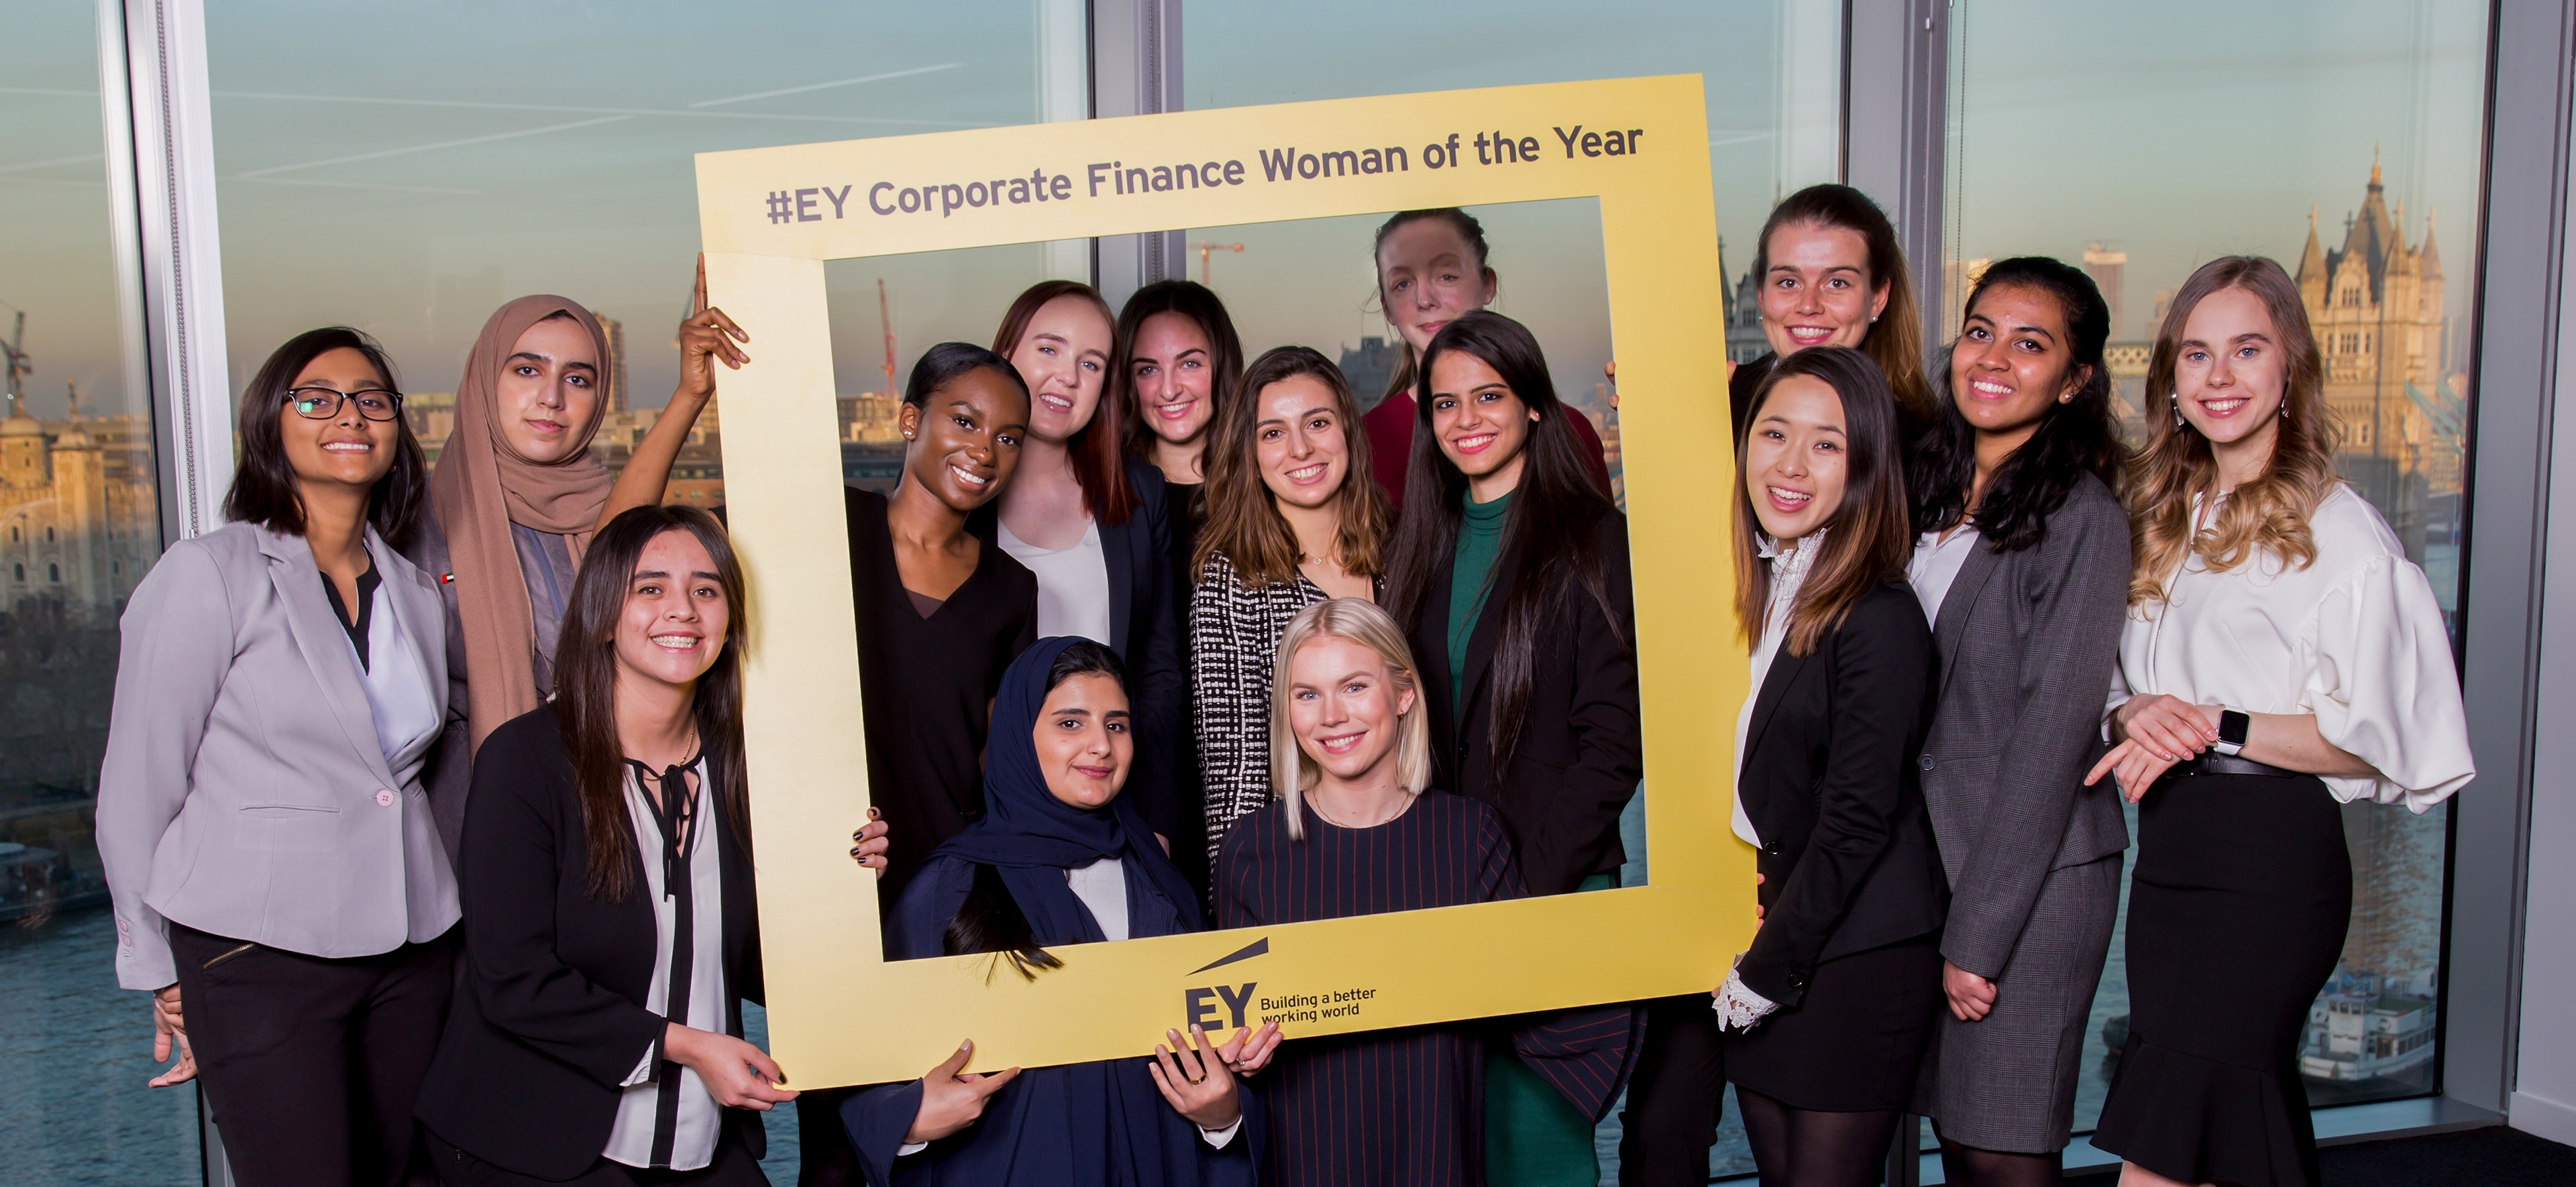 EY Corporate Finance Woman of the Year | EY – Global